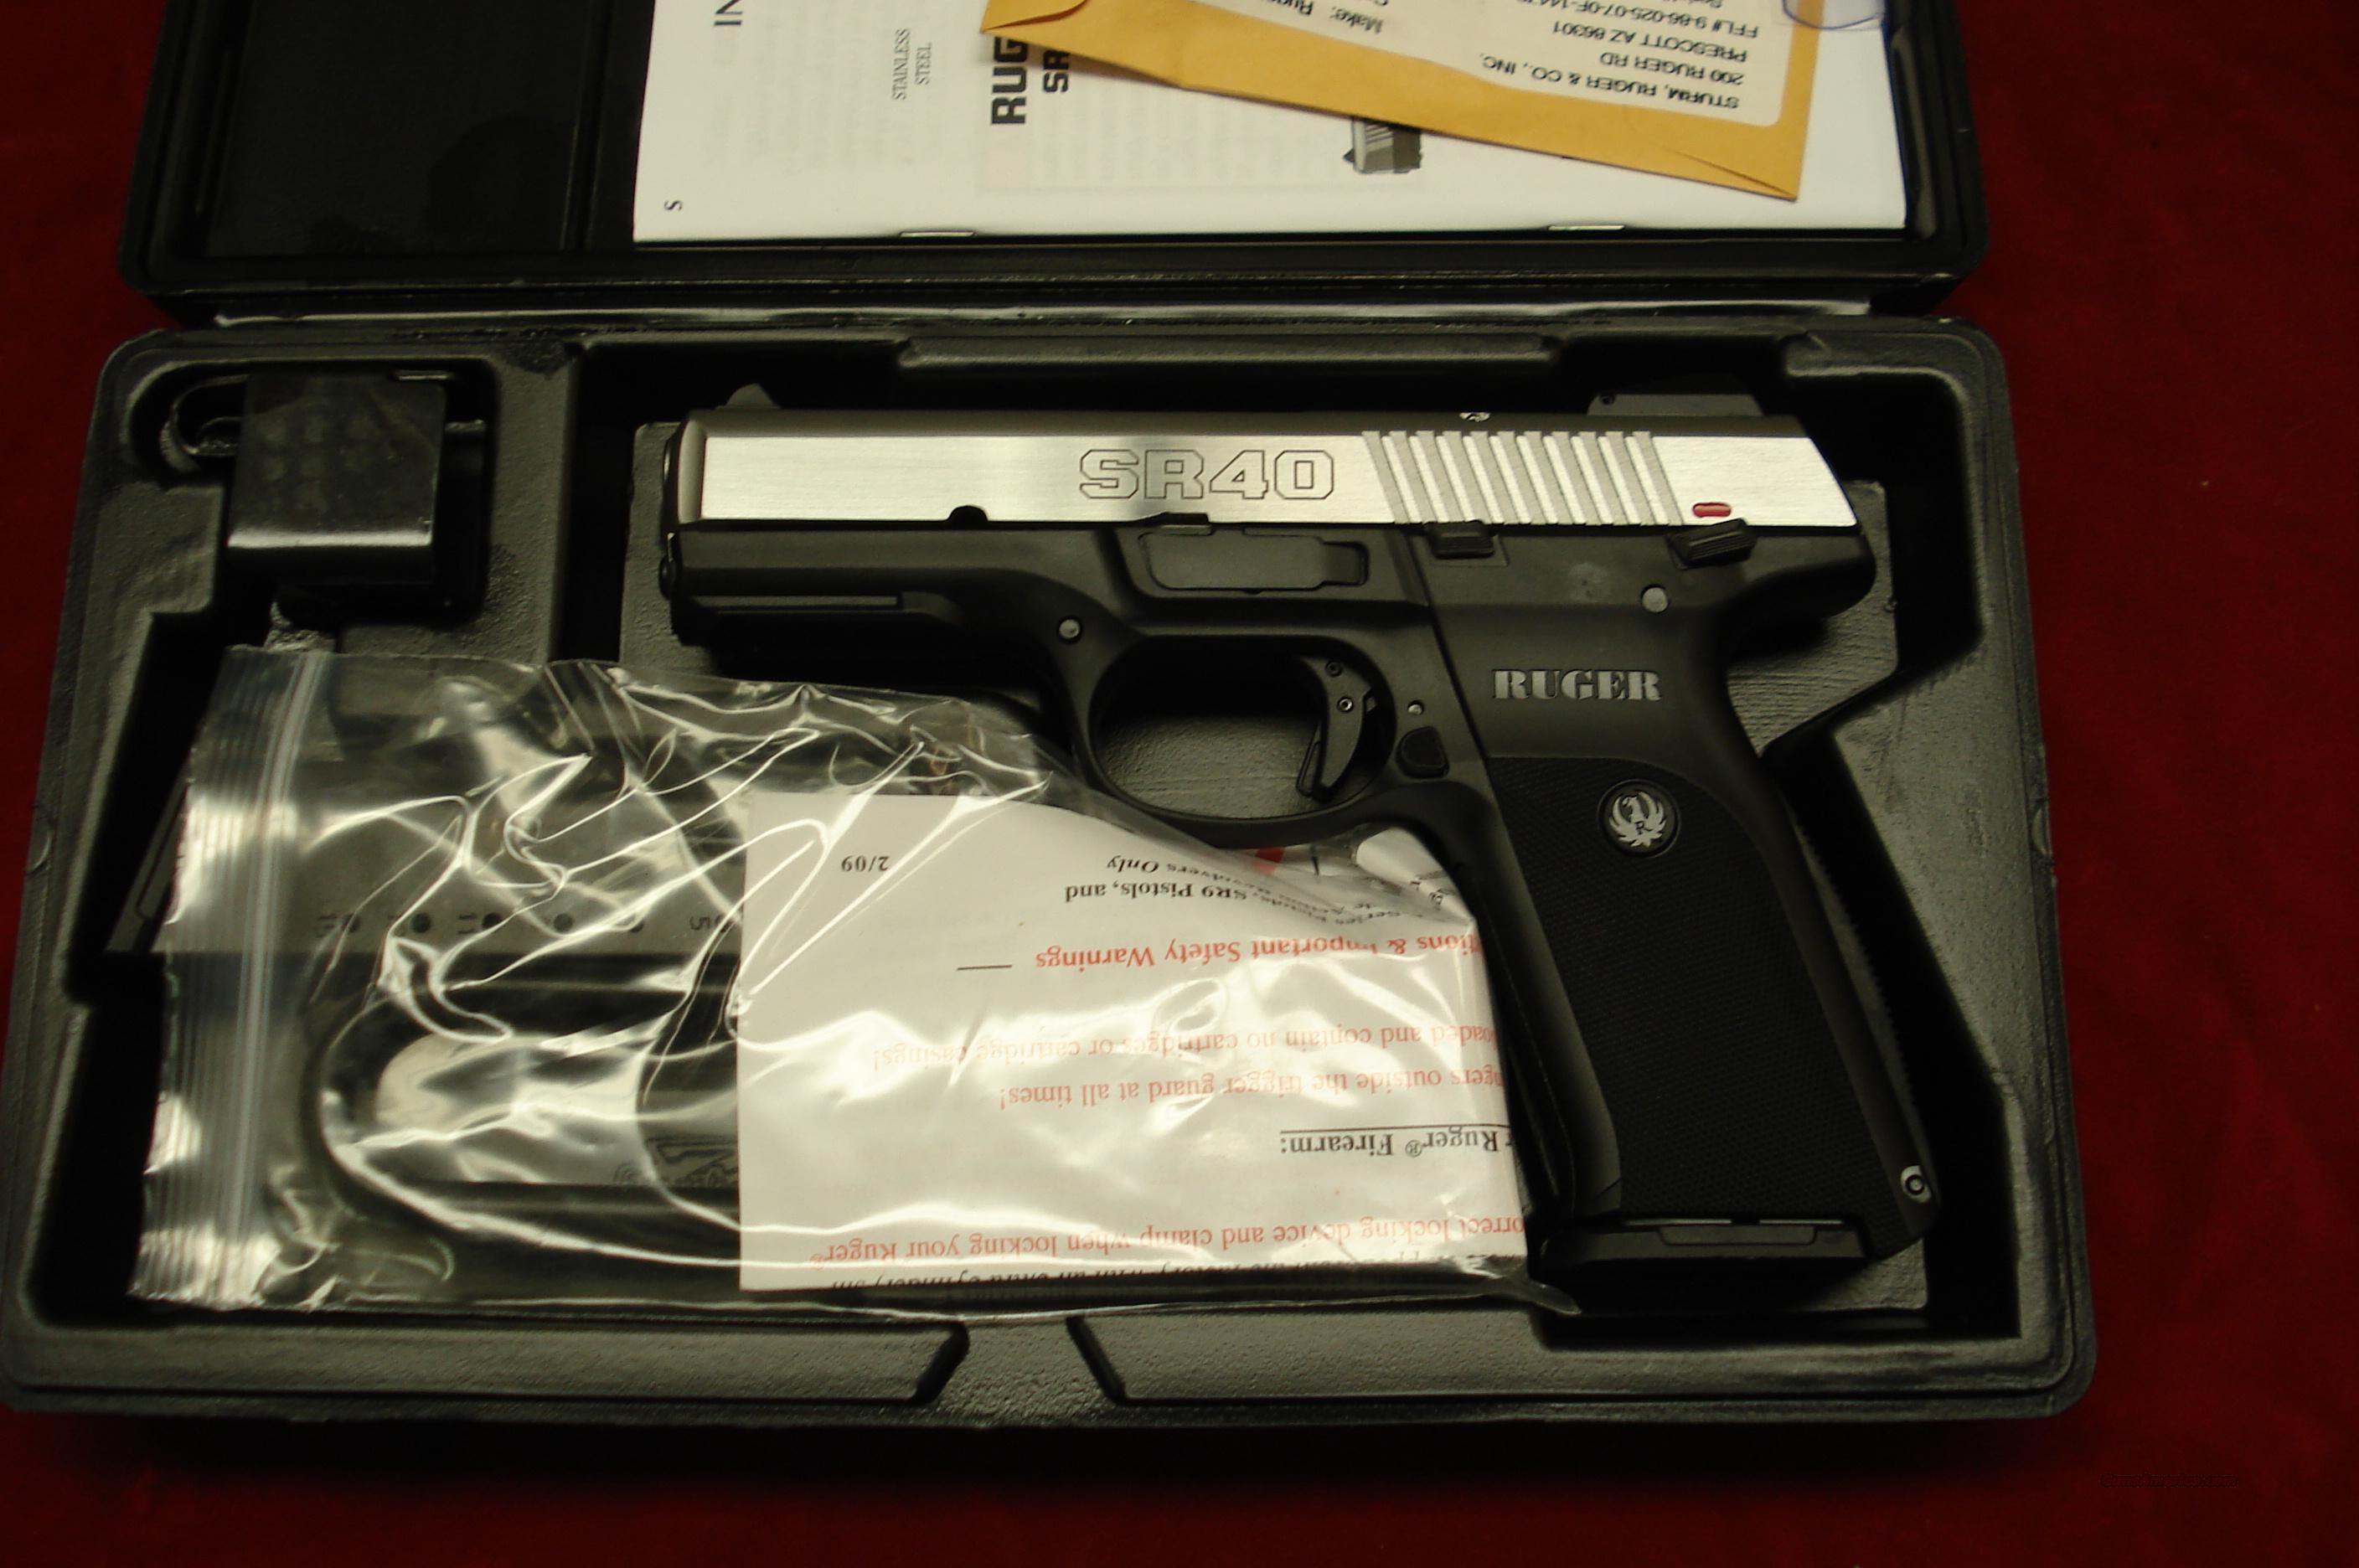 RUGER **NEW RELEASE** SR40 STAINLESS NEW (IN STOCK)! (SR40)  Guns > Pistols > Ruger Semi-Auto Pistols > SR9